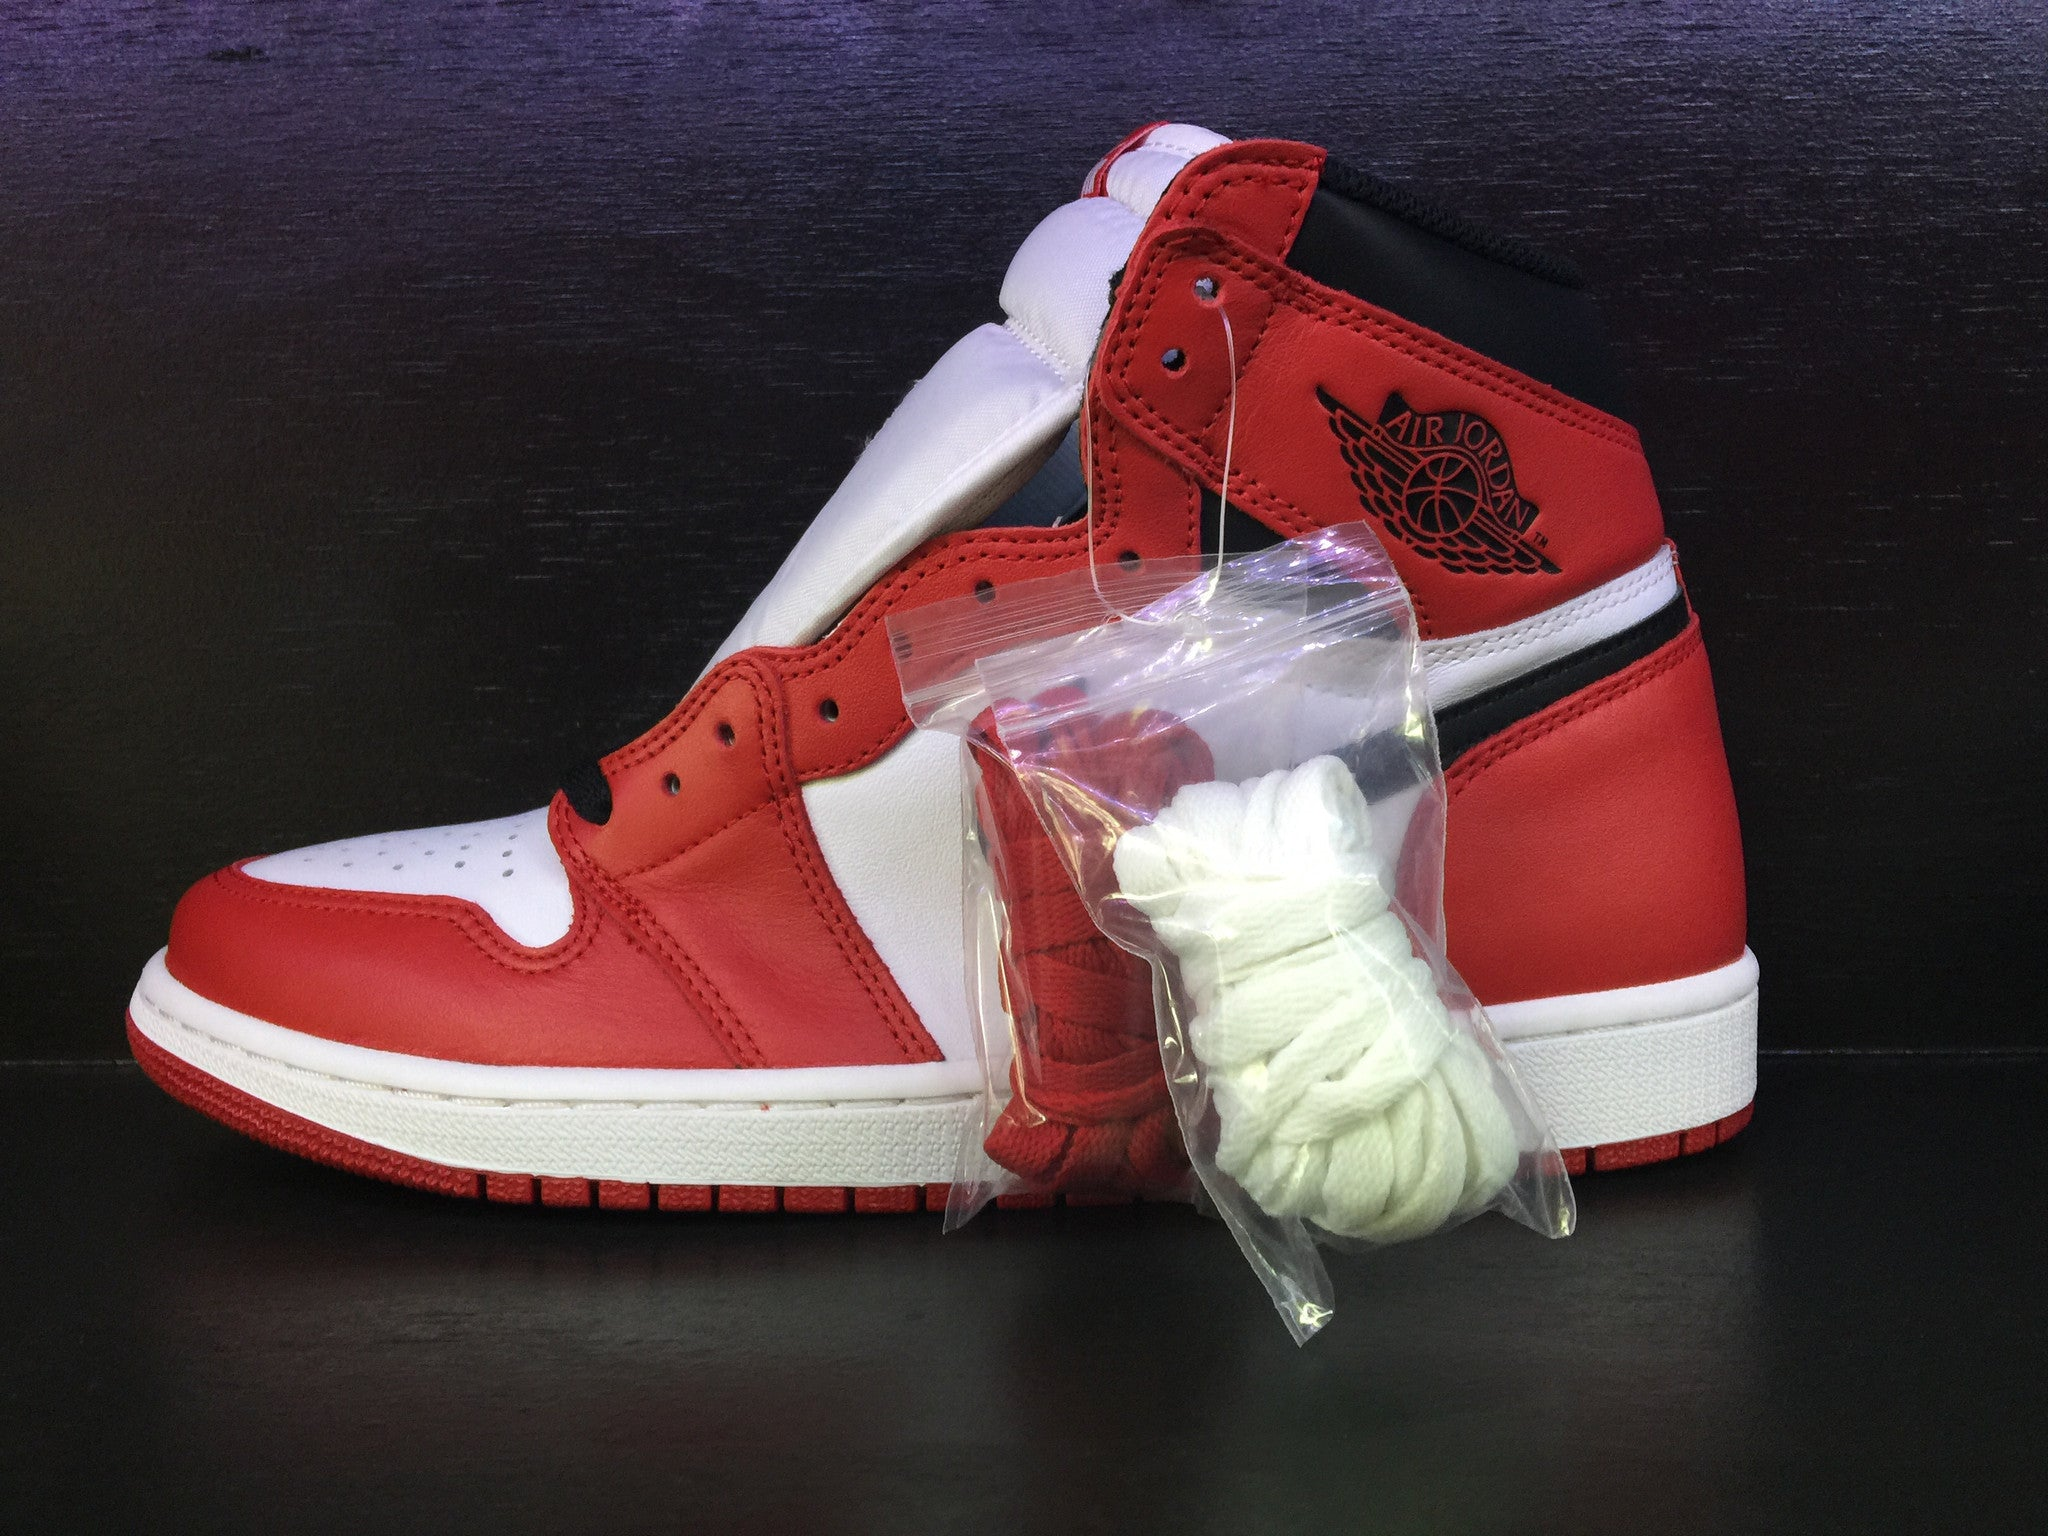 Air Jordan 1 Retro High OG 'Varsity Red' 'Chicago' Remastered